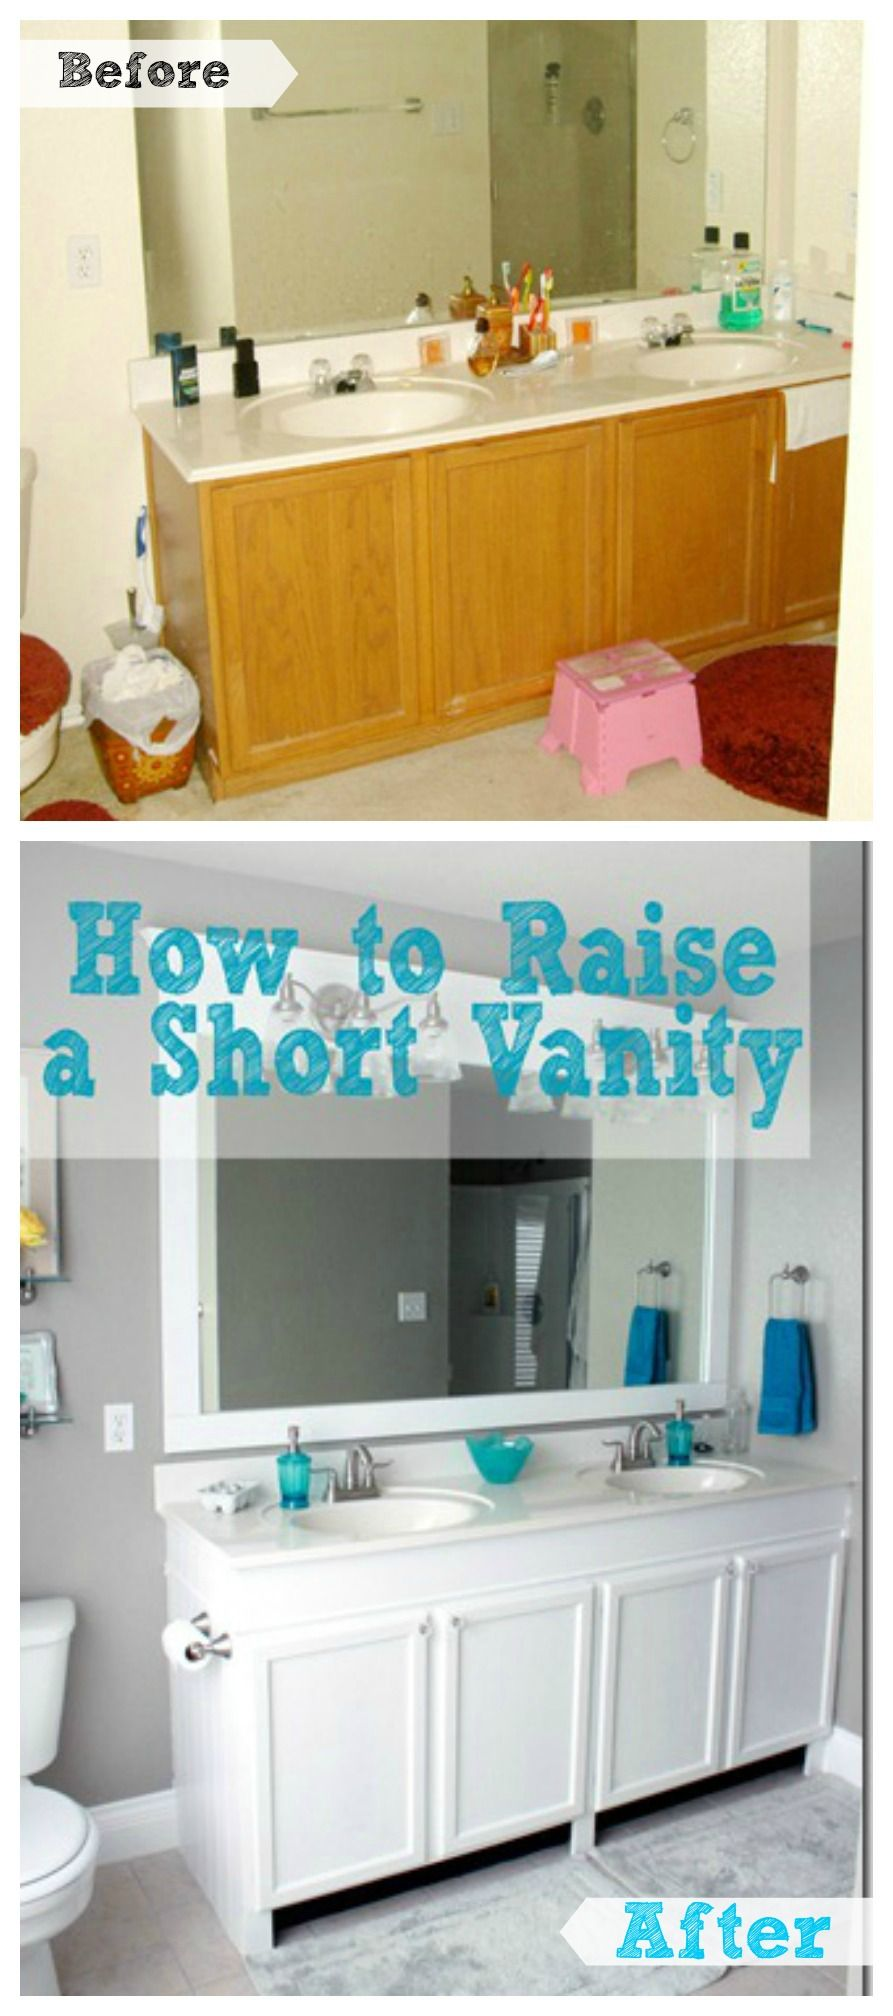 How to Raise a Short Bathroom Vanity | For the Home | Pinterest ...